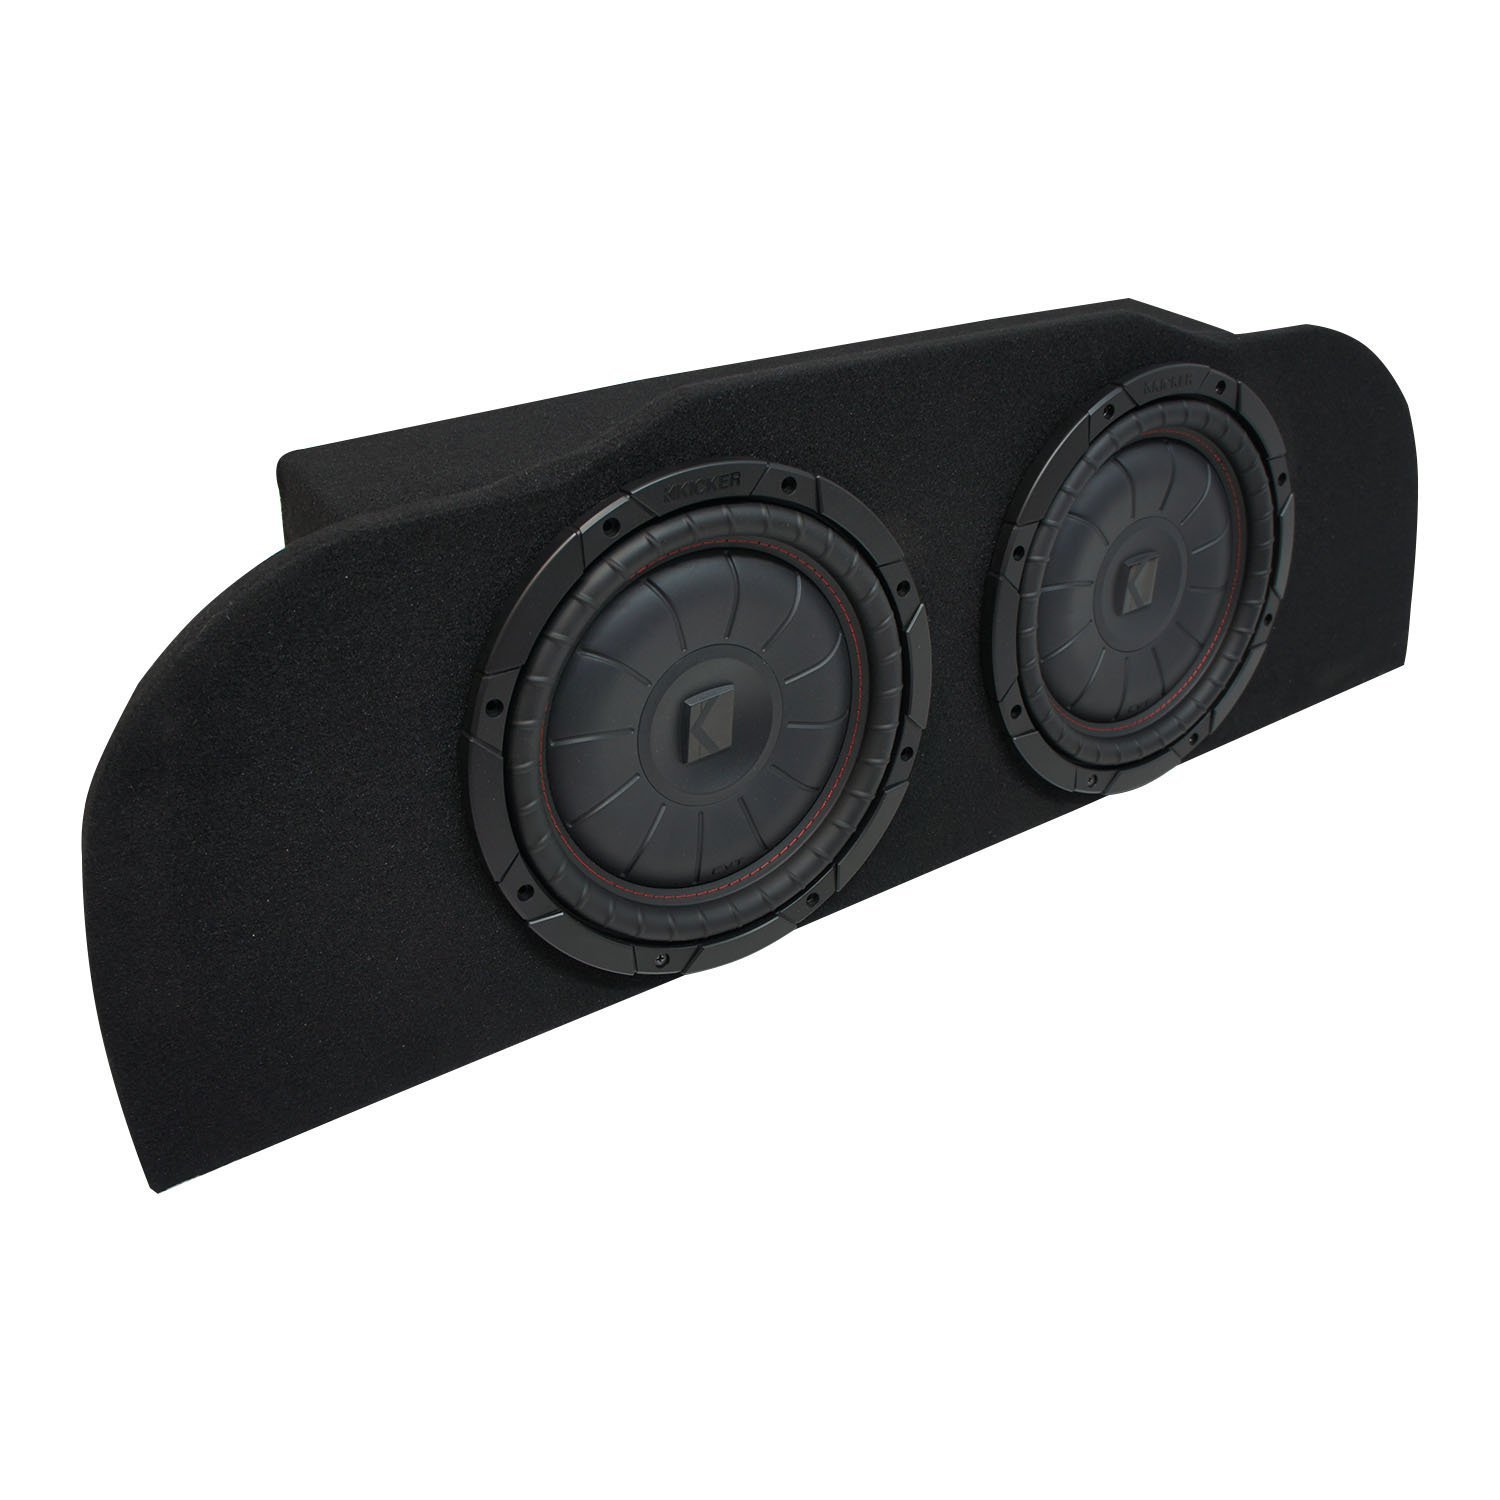 "2003-2015 Infiniti G35 Coupe Kicker CompVT CVT10 Subwoofer Dual 10"" Sub Box Enclosure - Final 2 Ohm"